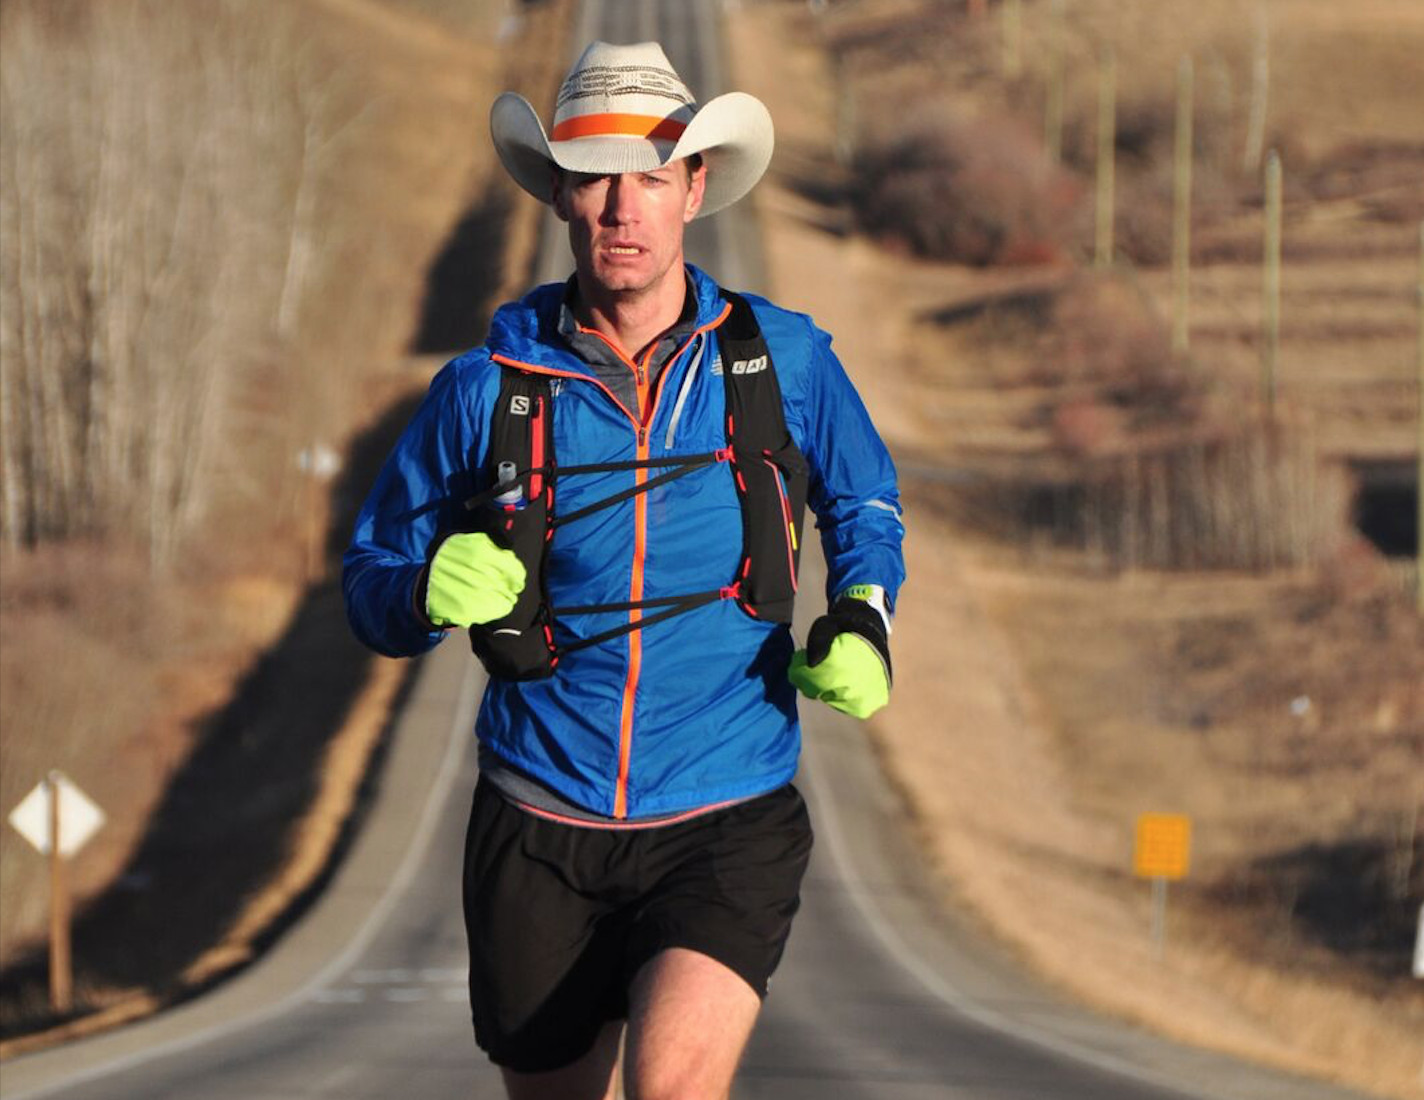 After 11 straight days on the road, ultrarunner Dave Proctor and his support crew arrived in Calgary Monday